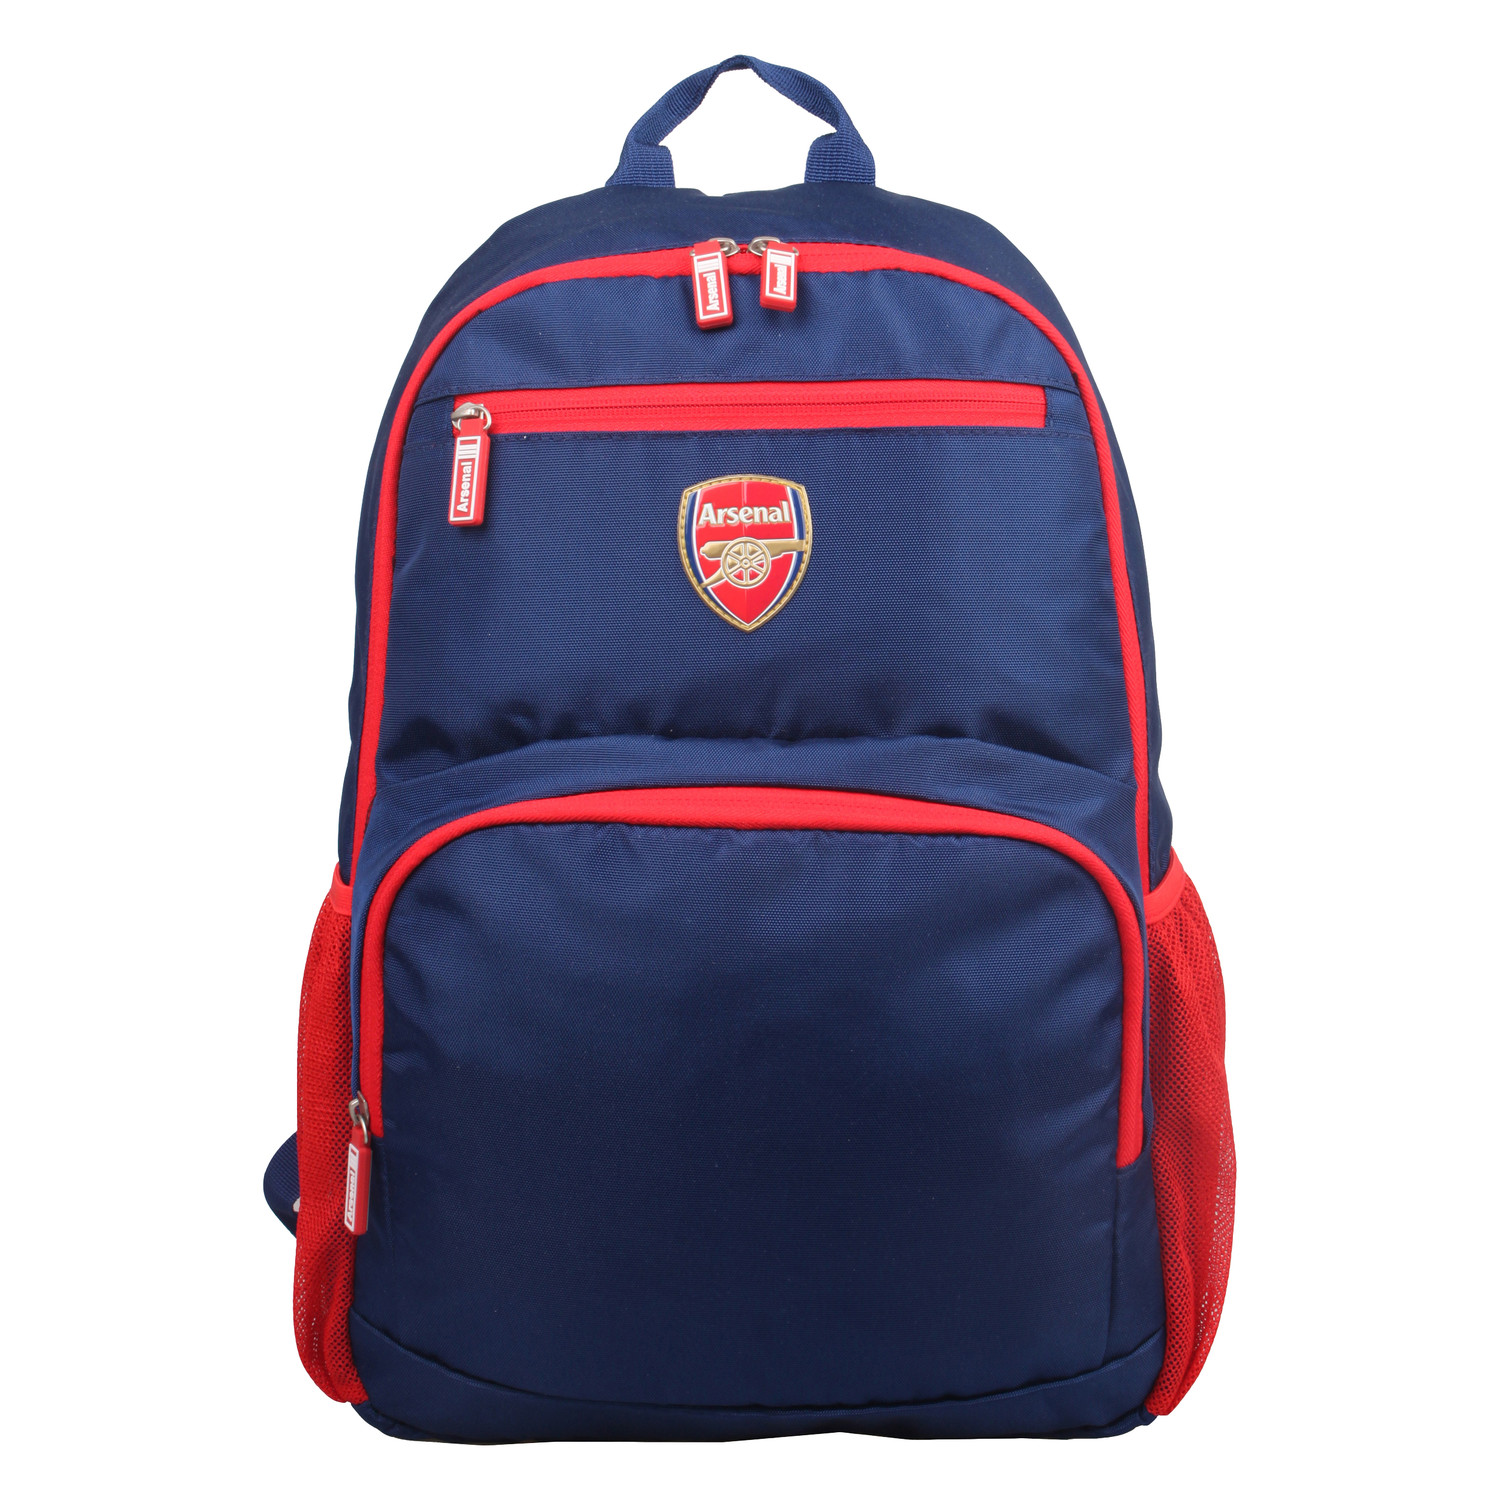 Arsenal F.C. Team Backpack